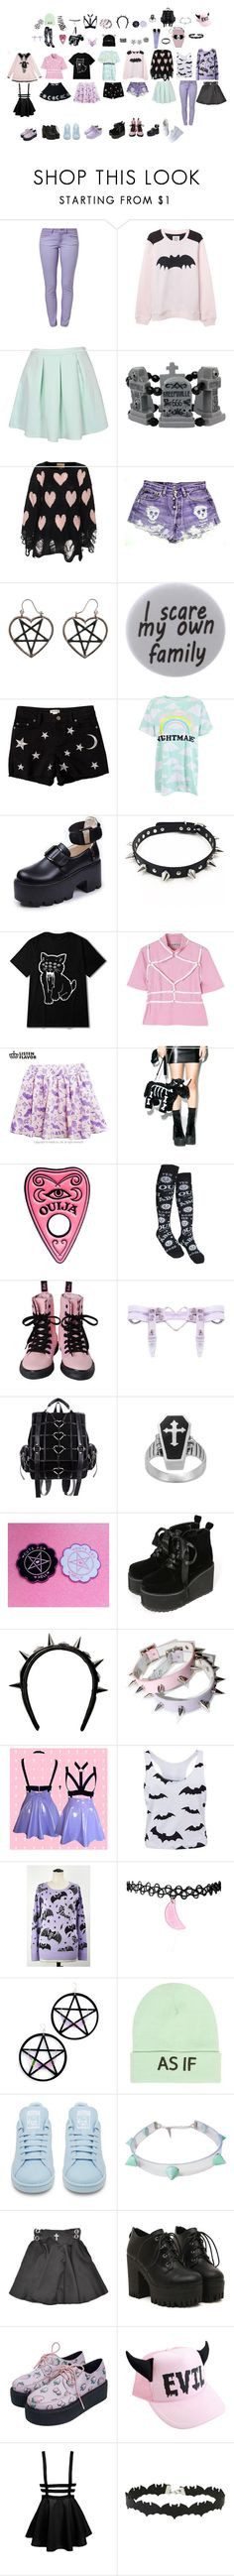 """pastel goth stuff"" by pastel-dream-hime ❤ liked on Polyvore featuring Levi's, Wildfox, Humör, Savannah, Disturbia, Coven, Tressa, Givenchy, Marina Fini and Wet Seal"